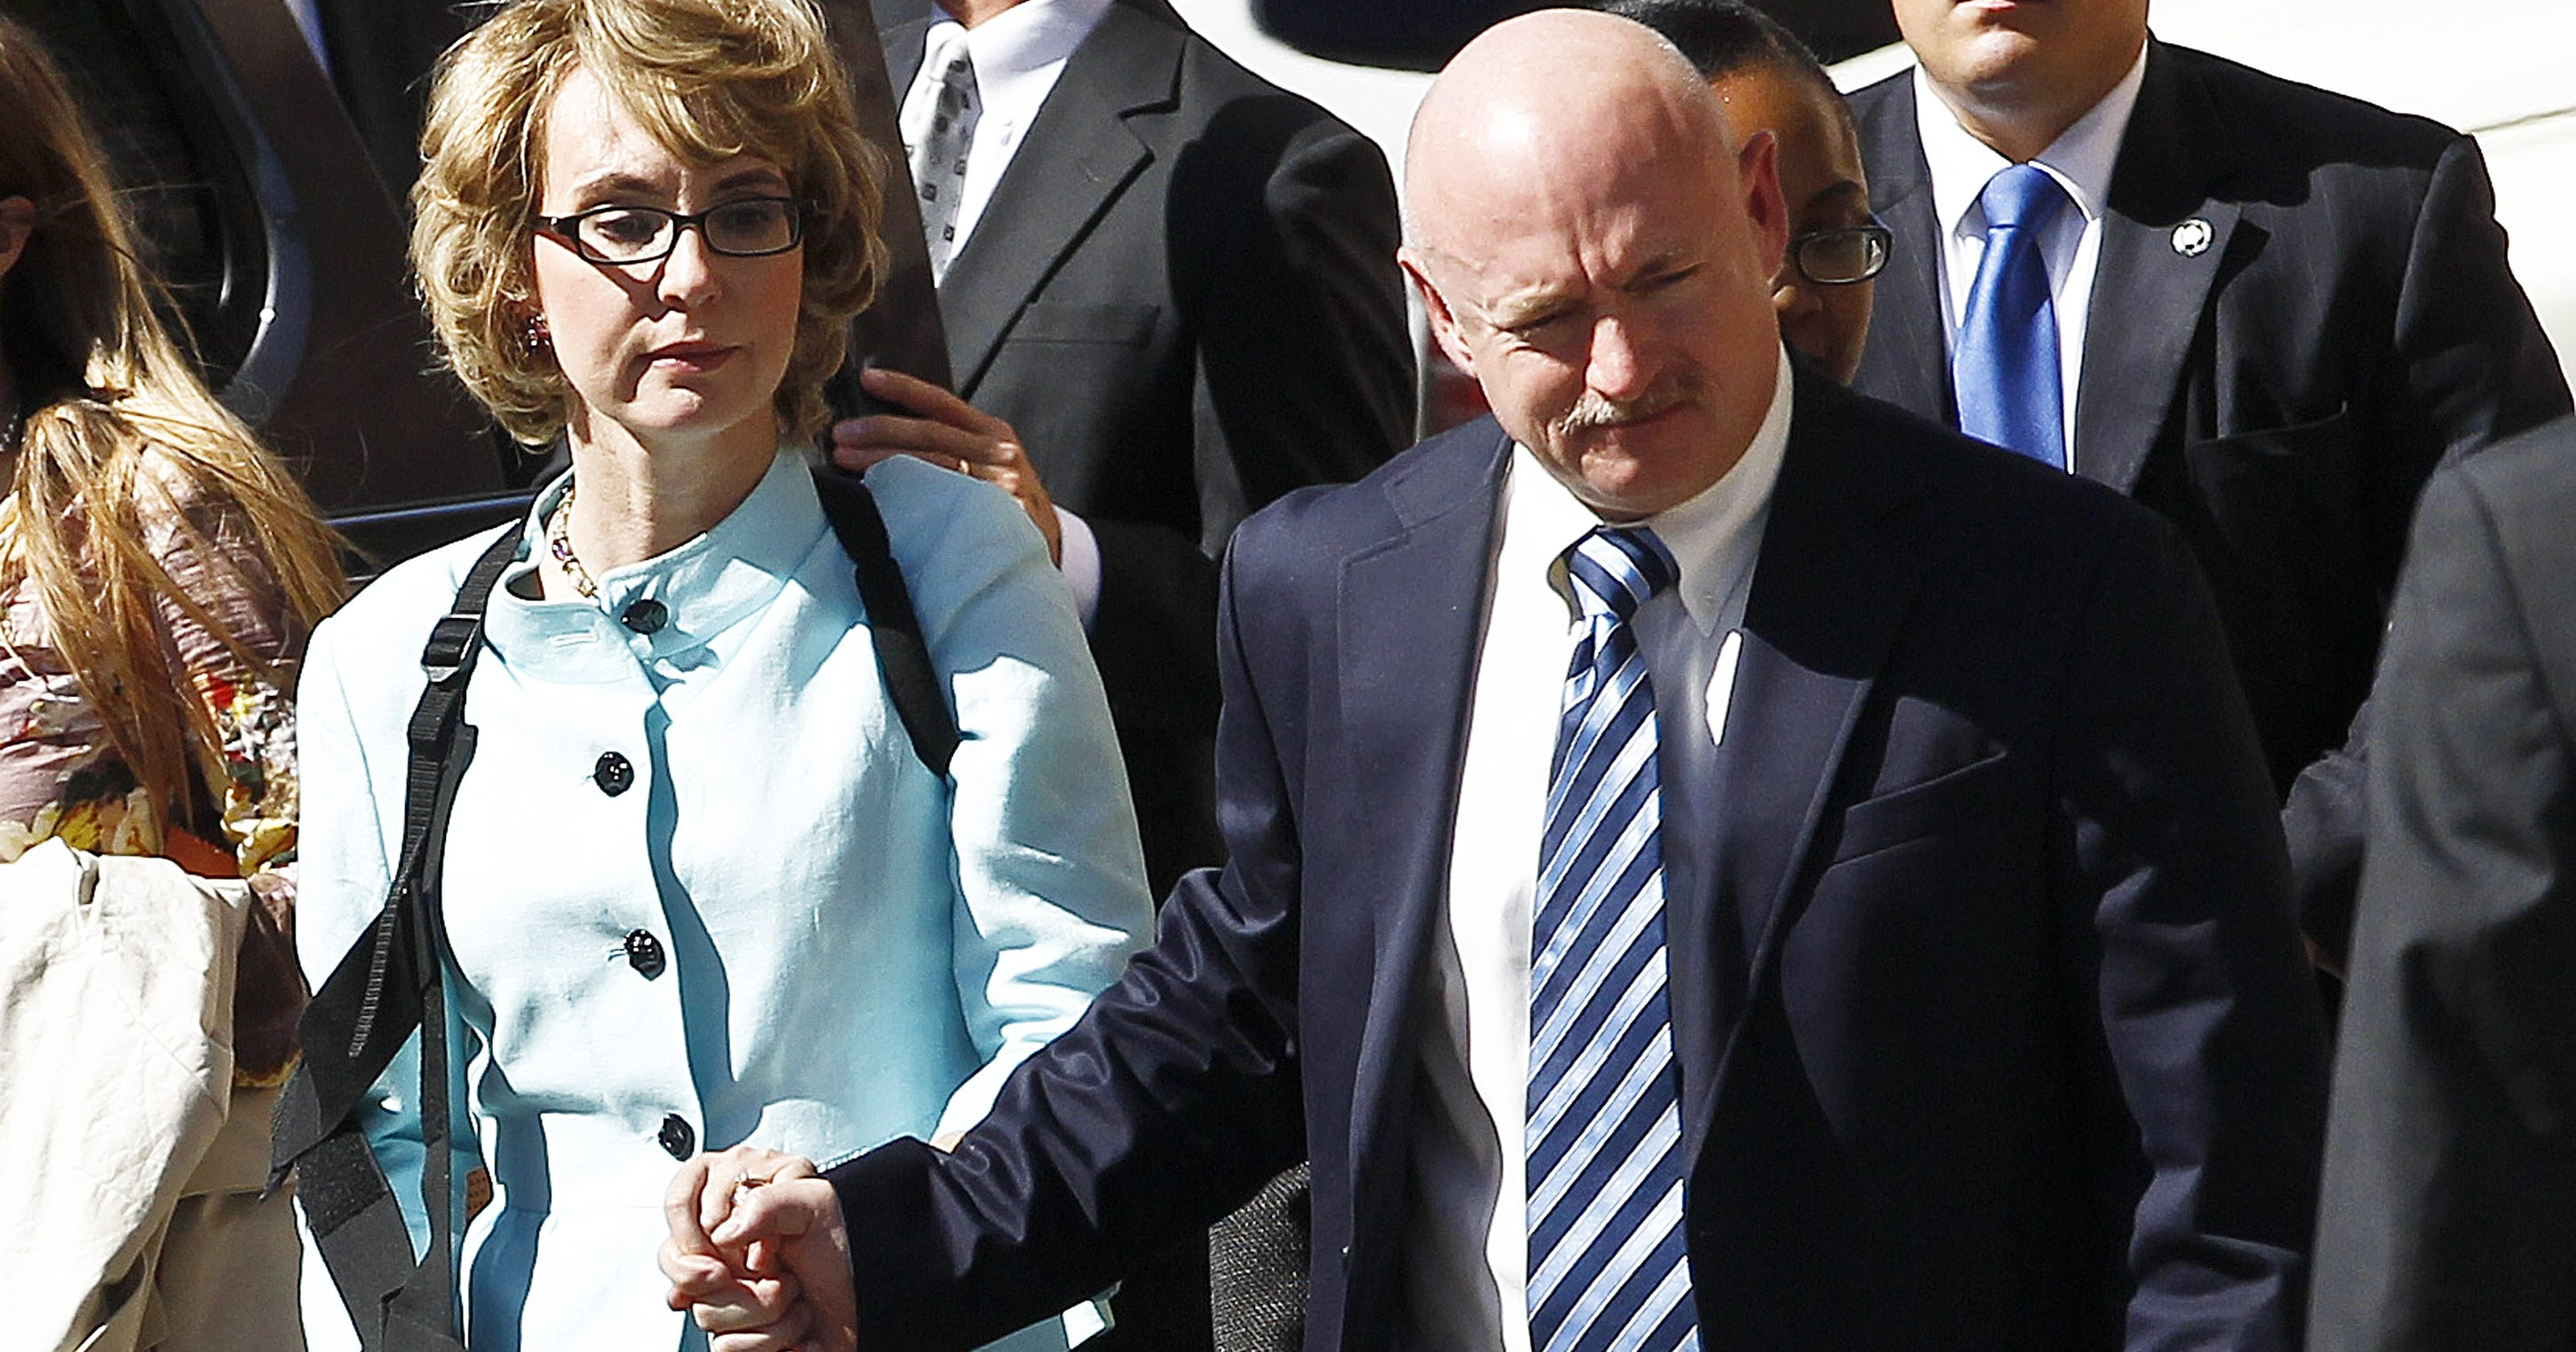 Giffords' gun-control PAC to test her political appeal